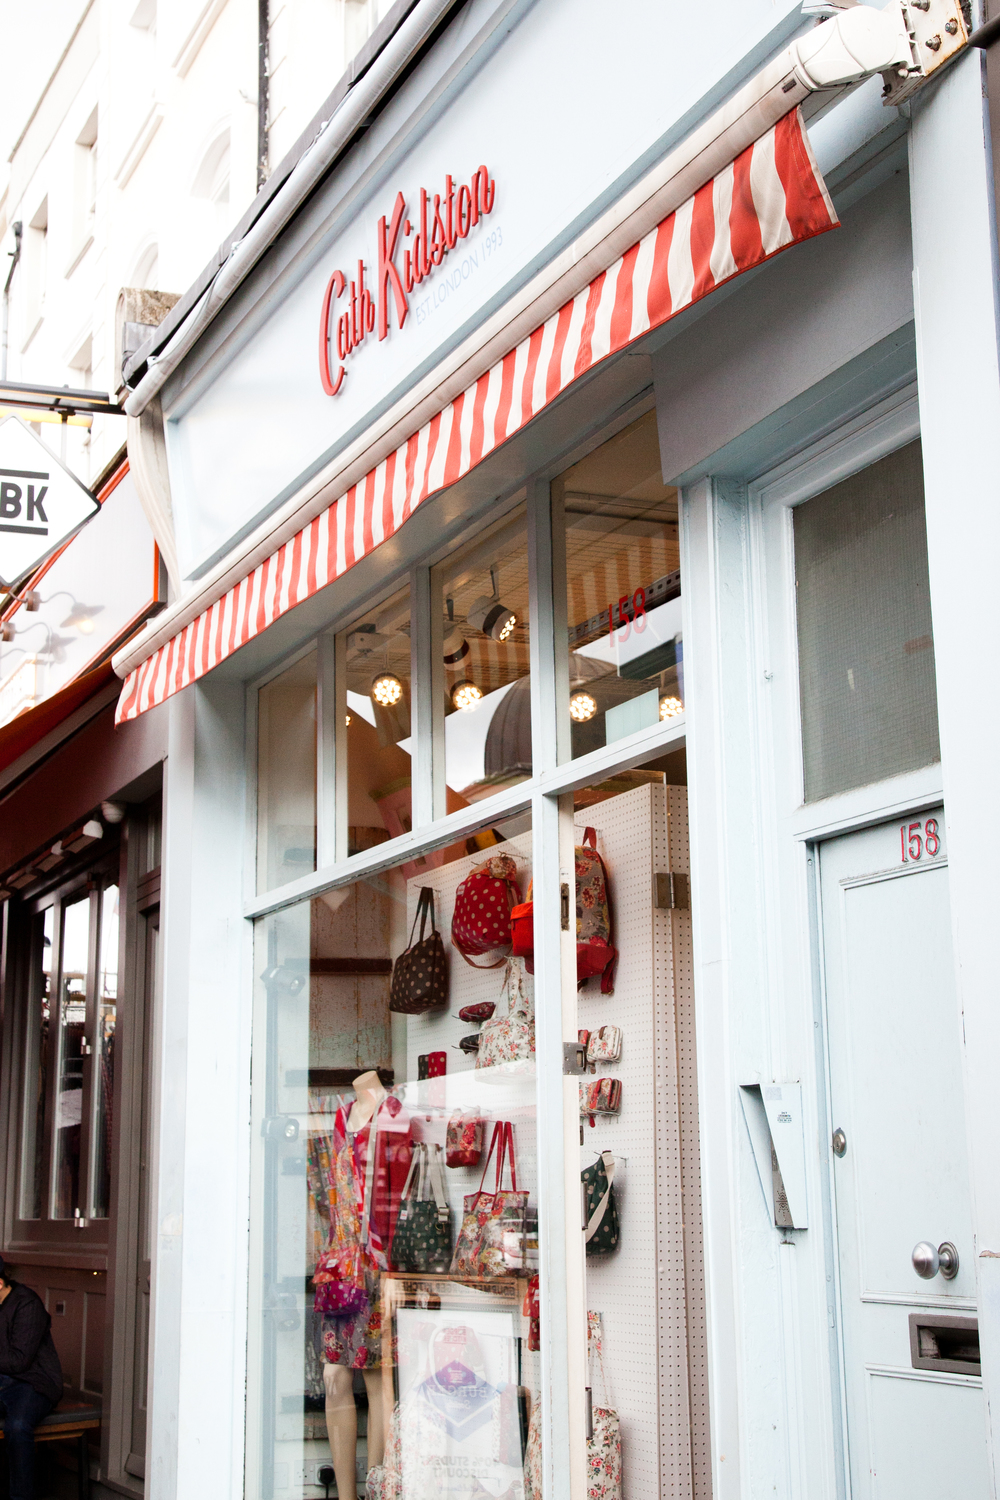 _MG_9989_cathkidston_49.jpg